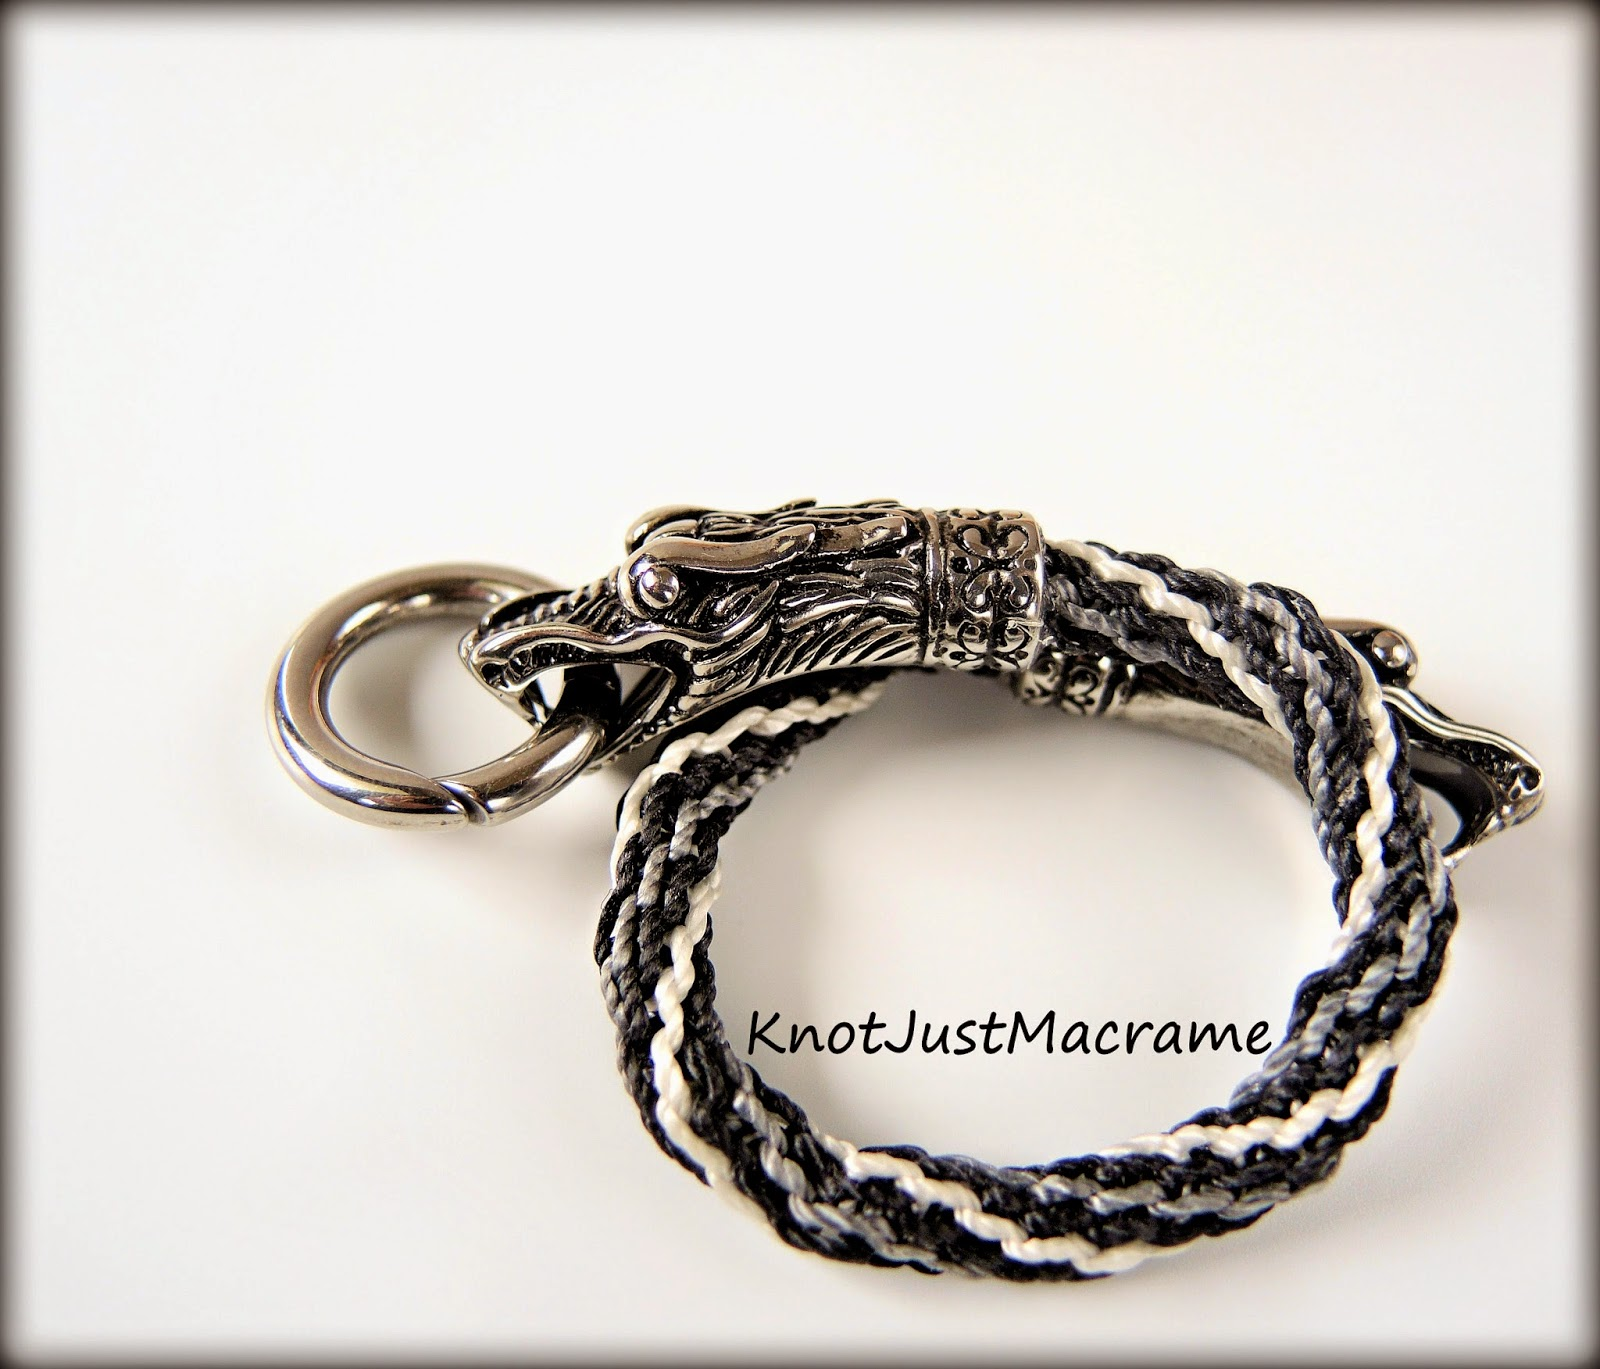 Micro macrame bracelet with dragon heads closure by Sherri Stokey of Knot Just Macrame.